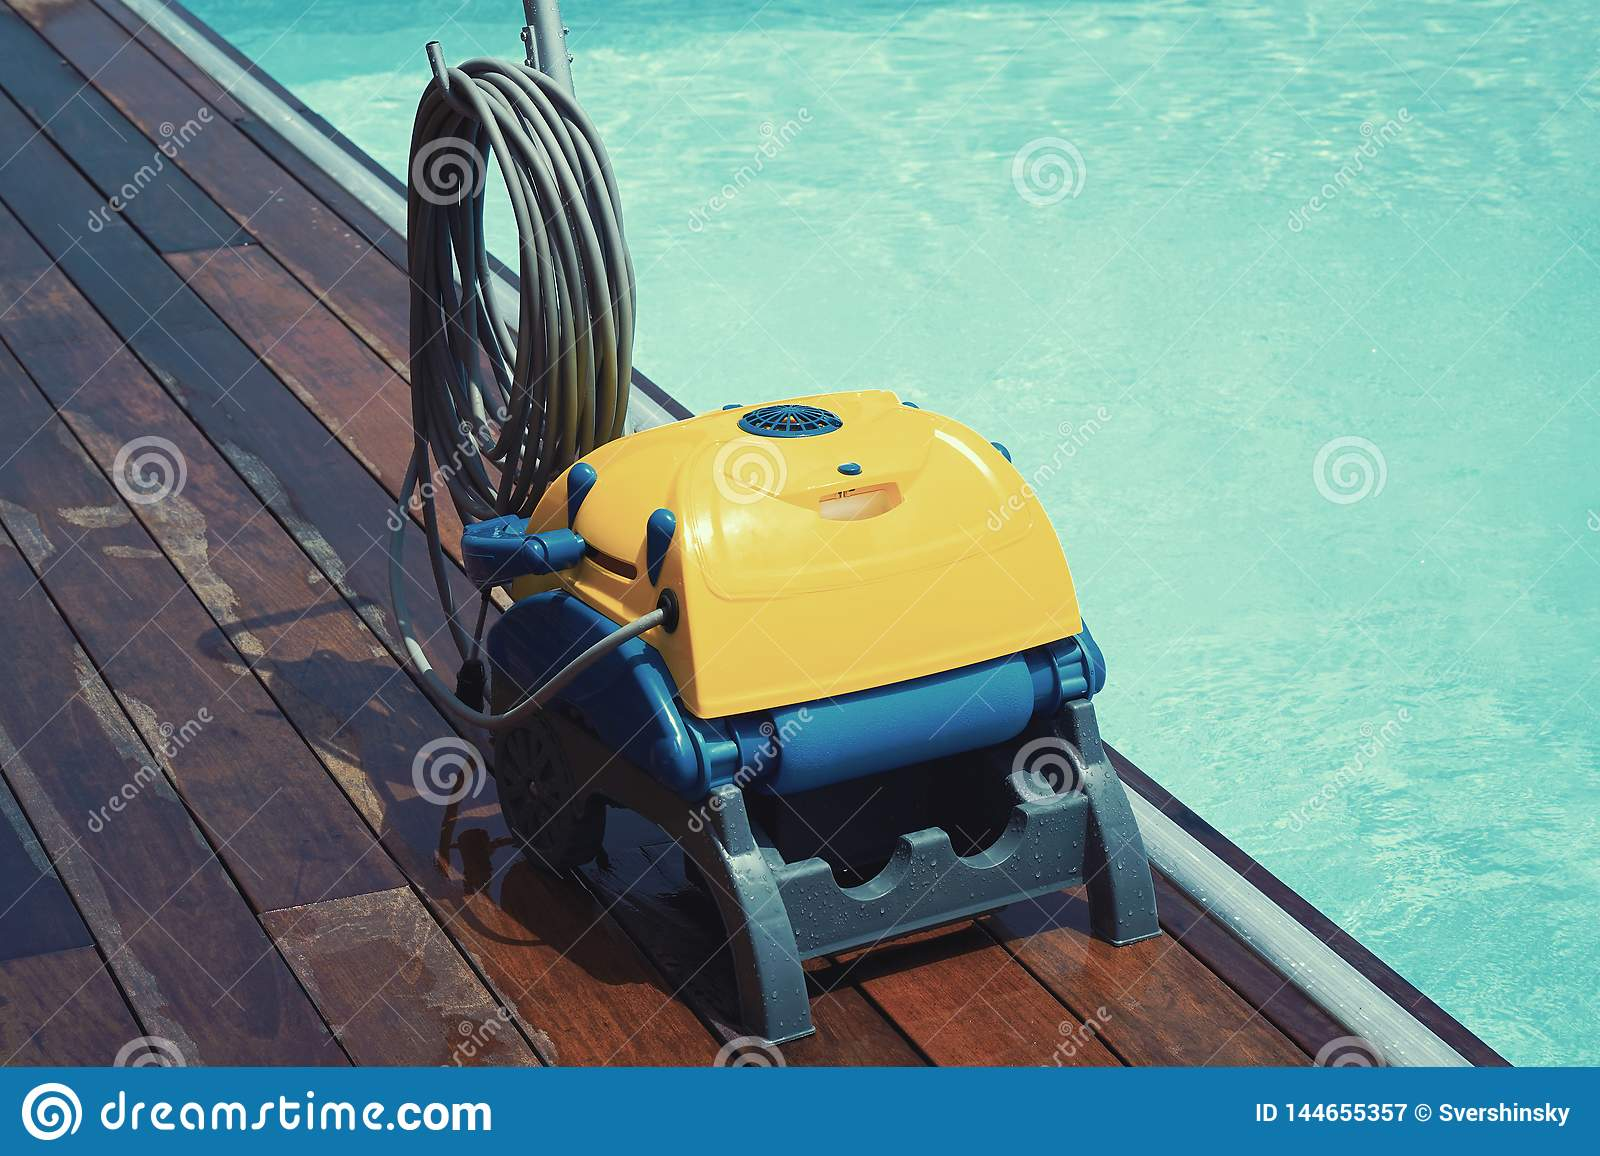 Automatic pool cleaners stock image. Image of people - 144655357